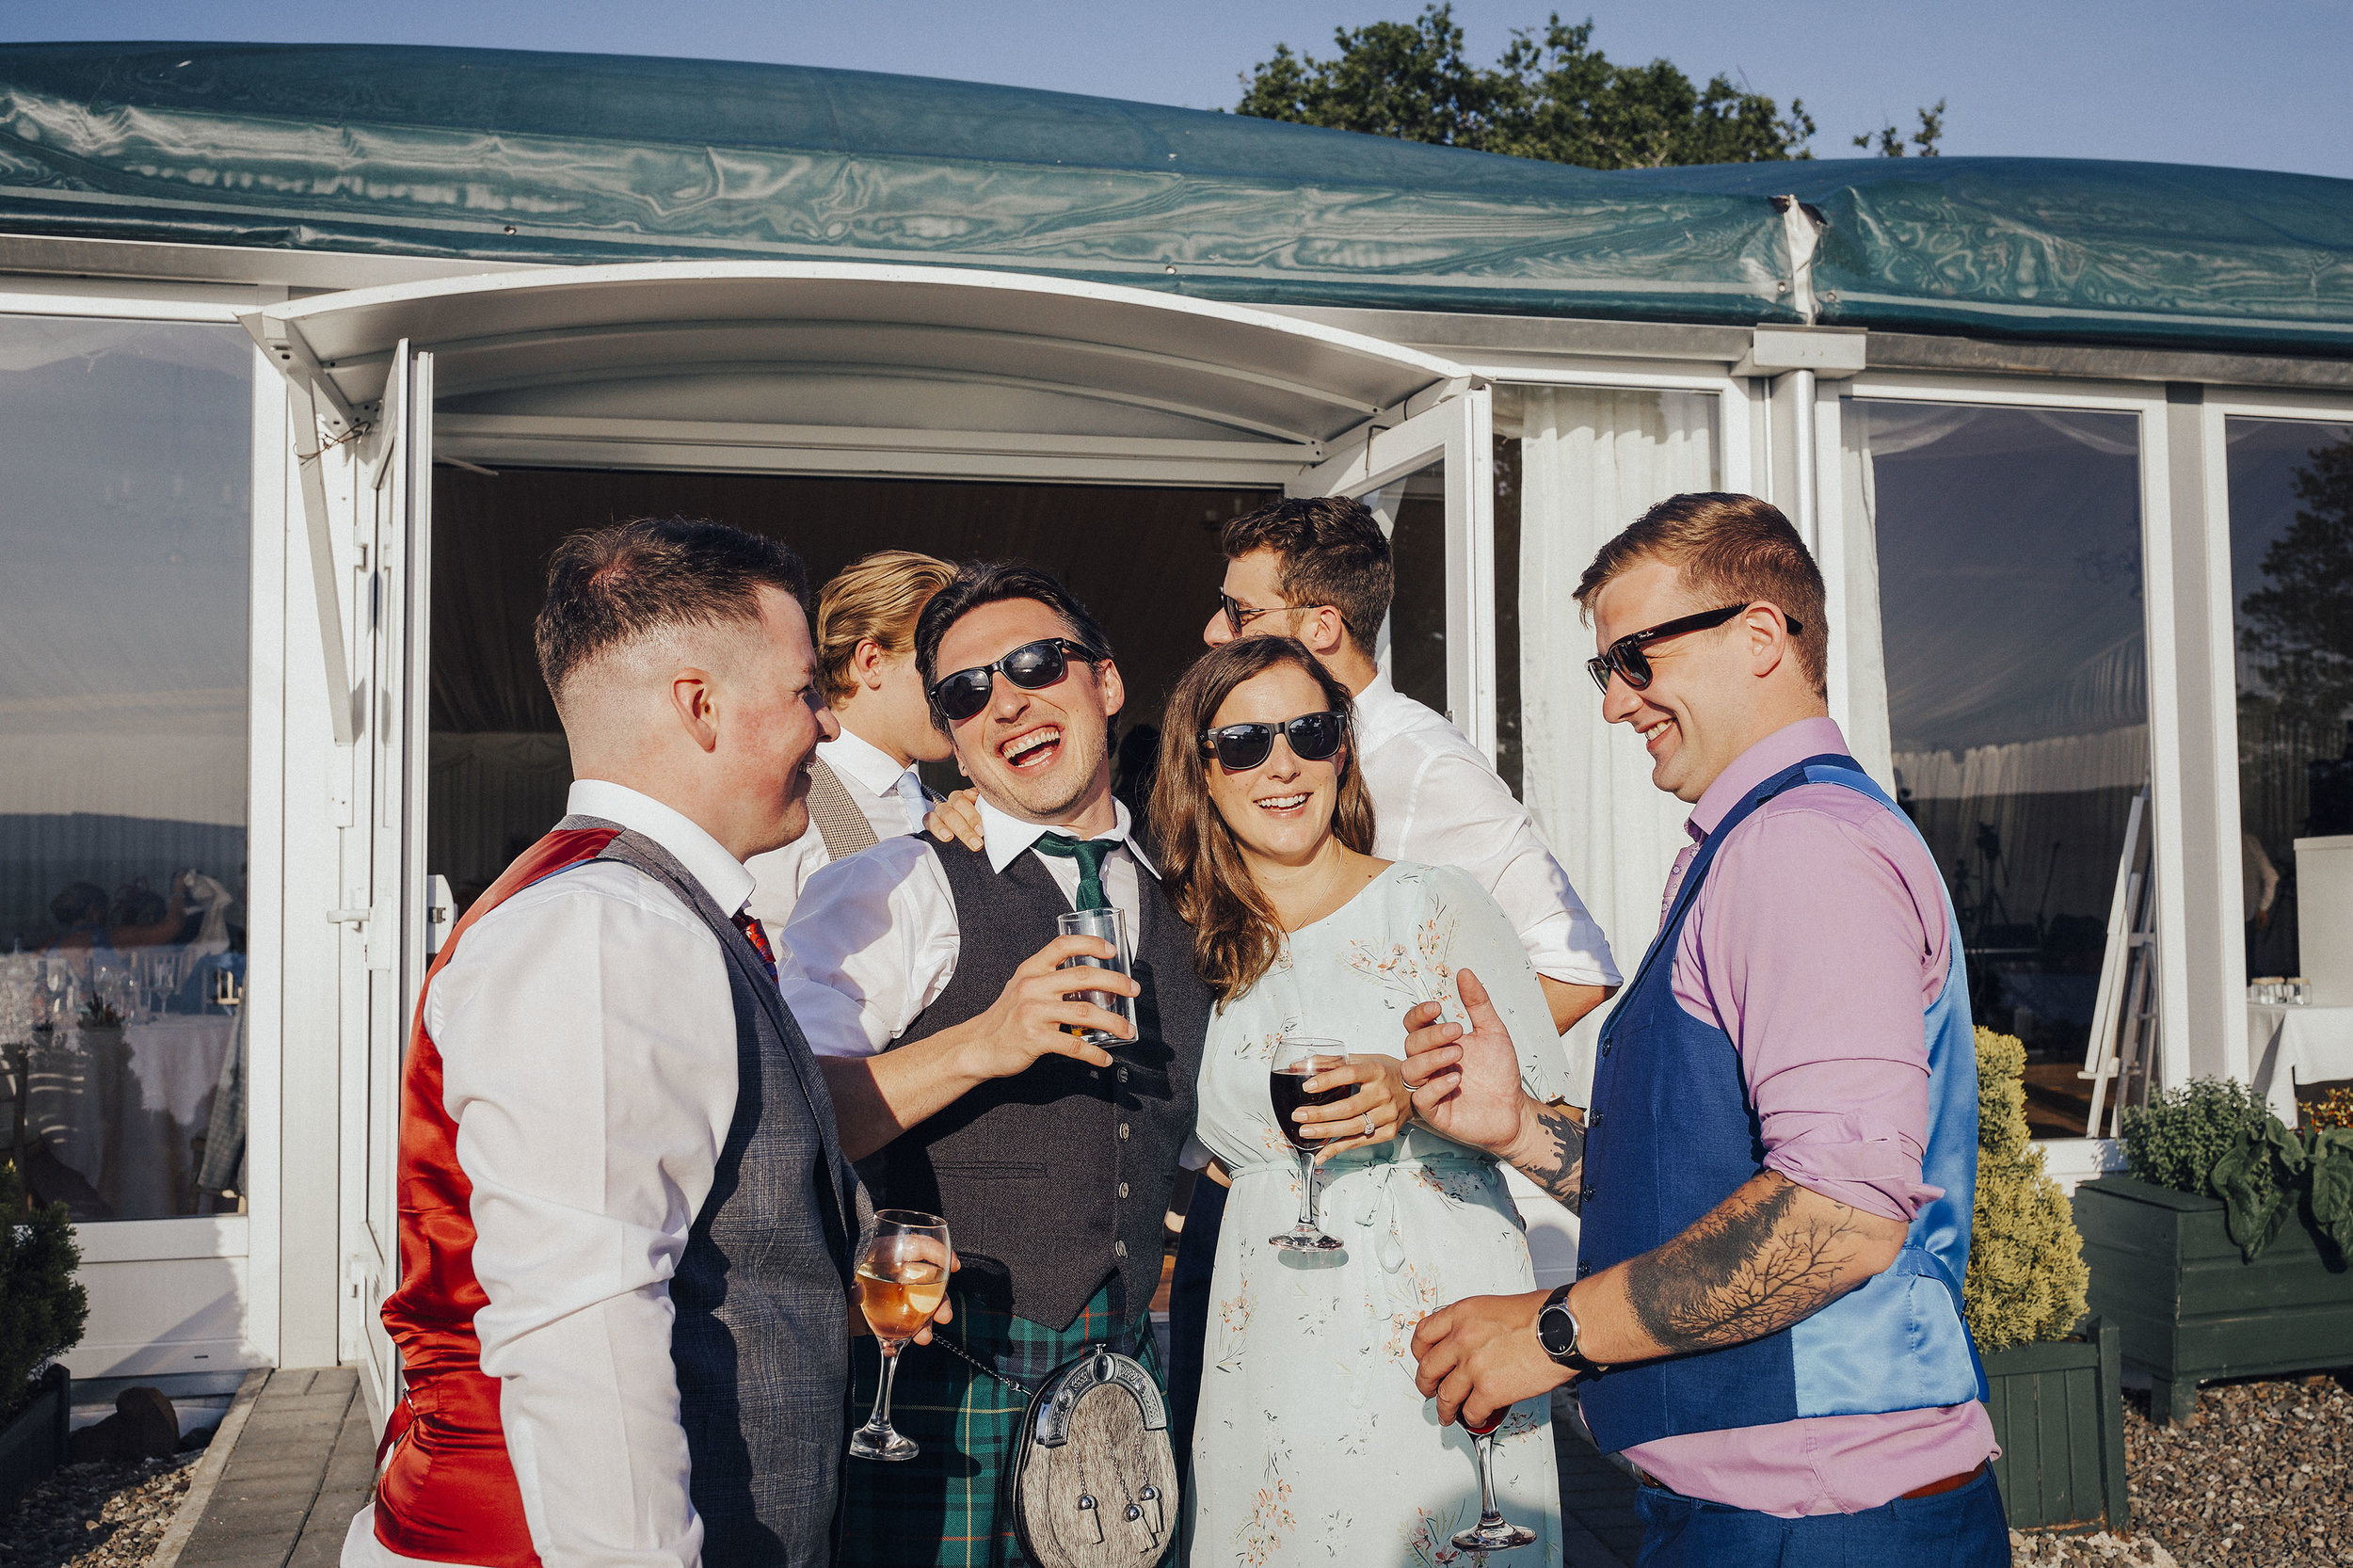 PJ_PHILLIPS_PHOTOGRAPHY_2018_SCOTLAND_WEDDING_PHOTOOGRAPHER_254.jpg